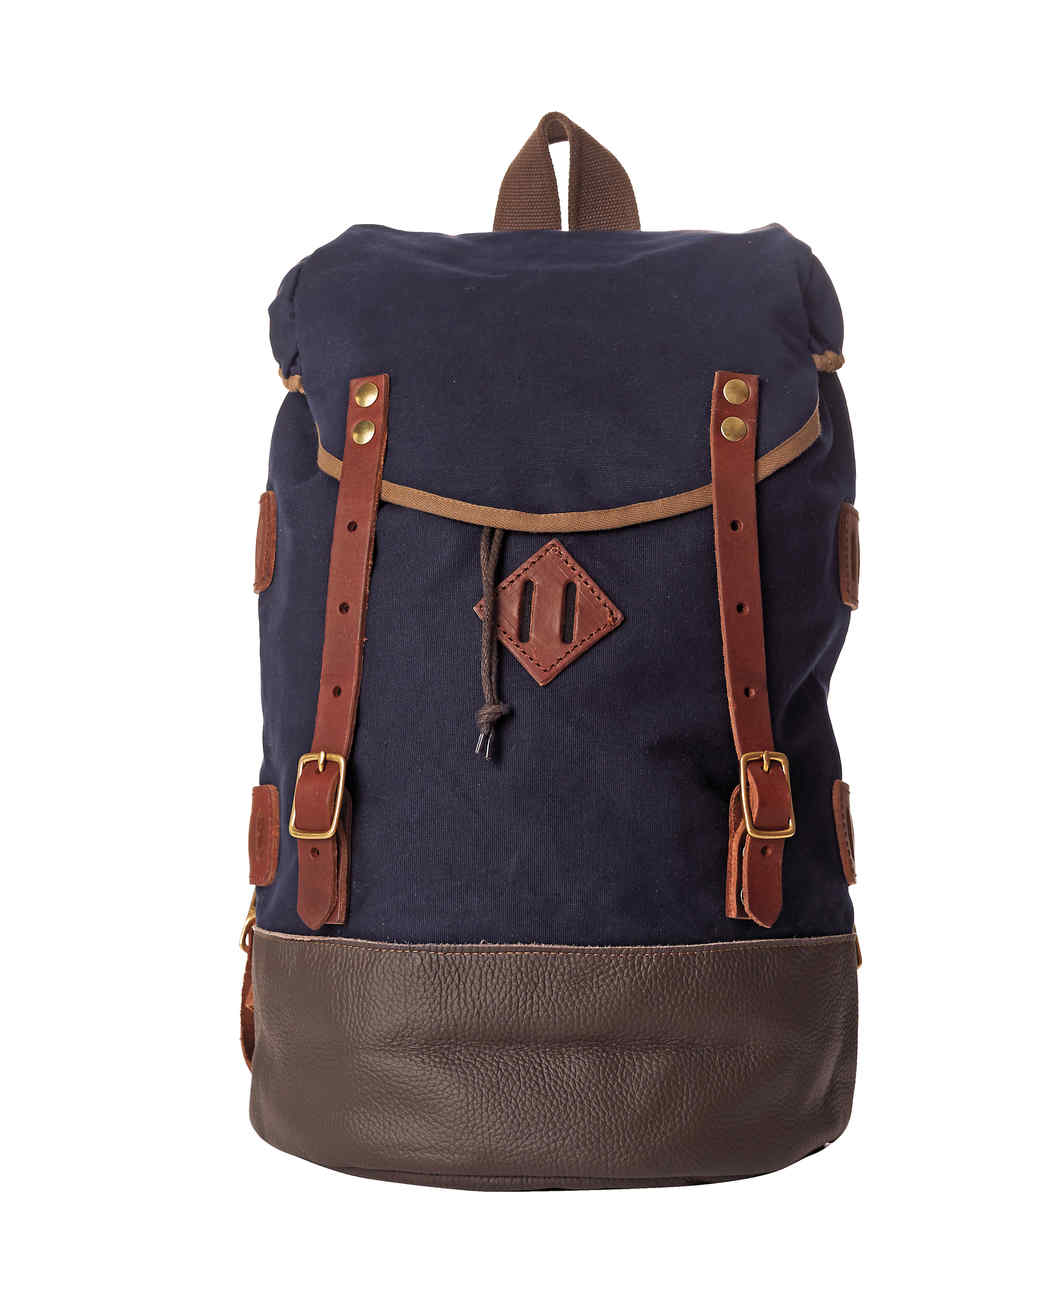 seil-marschall-backpack-073-d111059.jpg